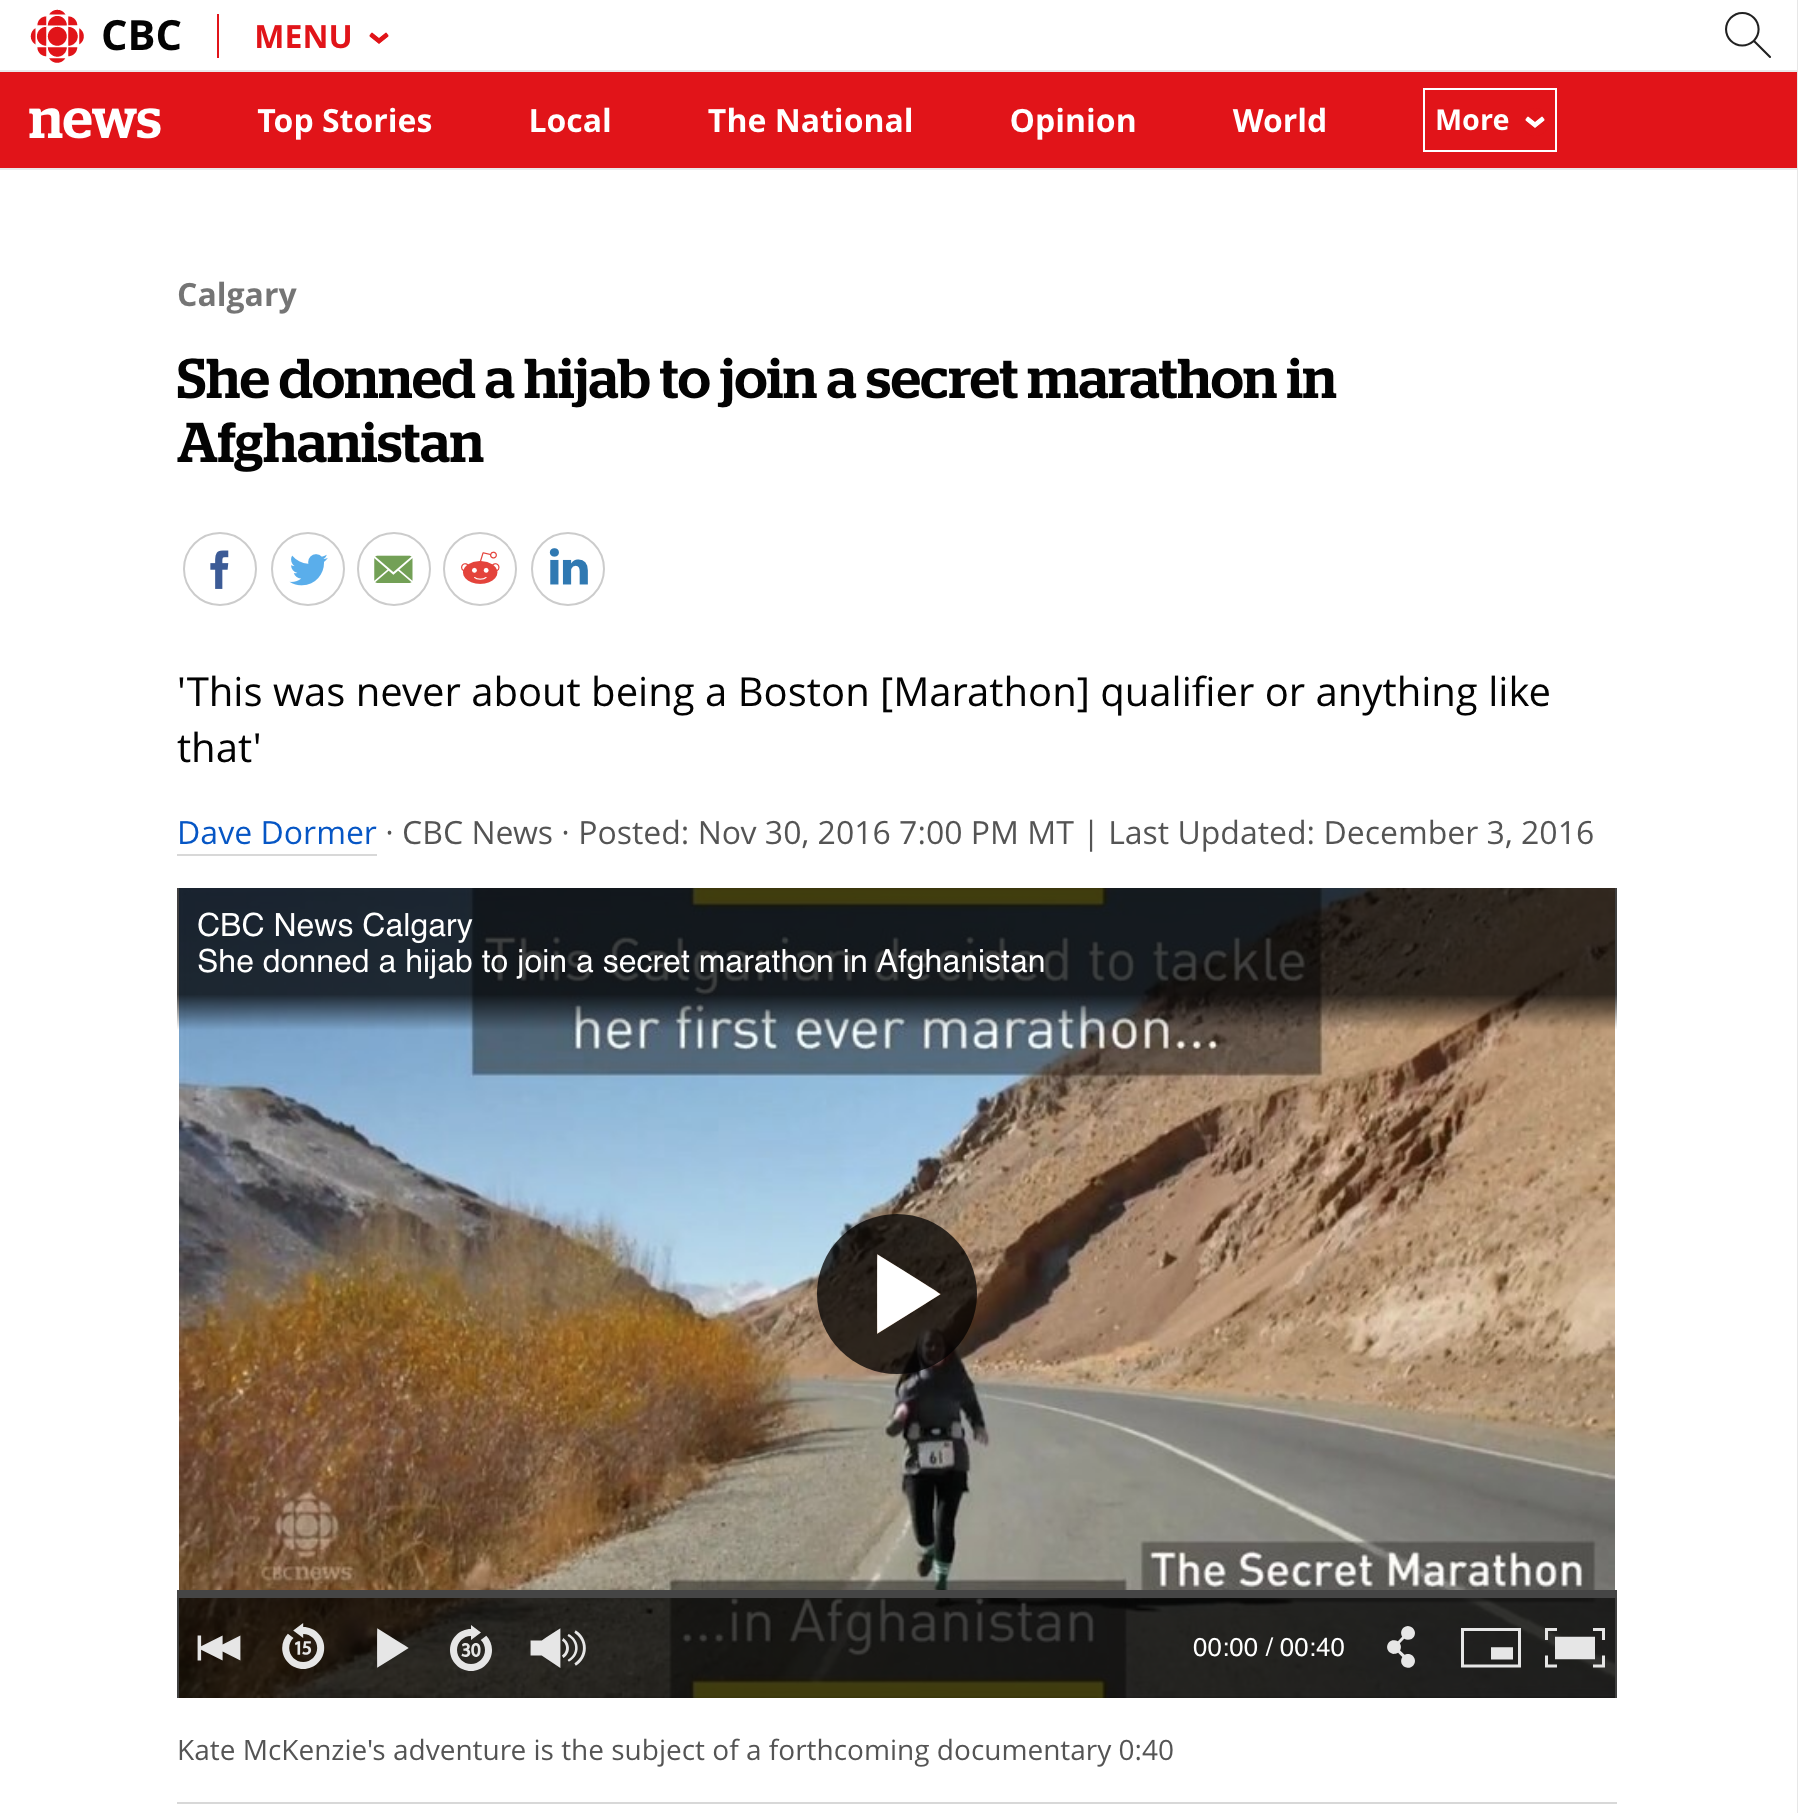 CBC - The Secret Marathon Film